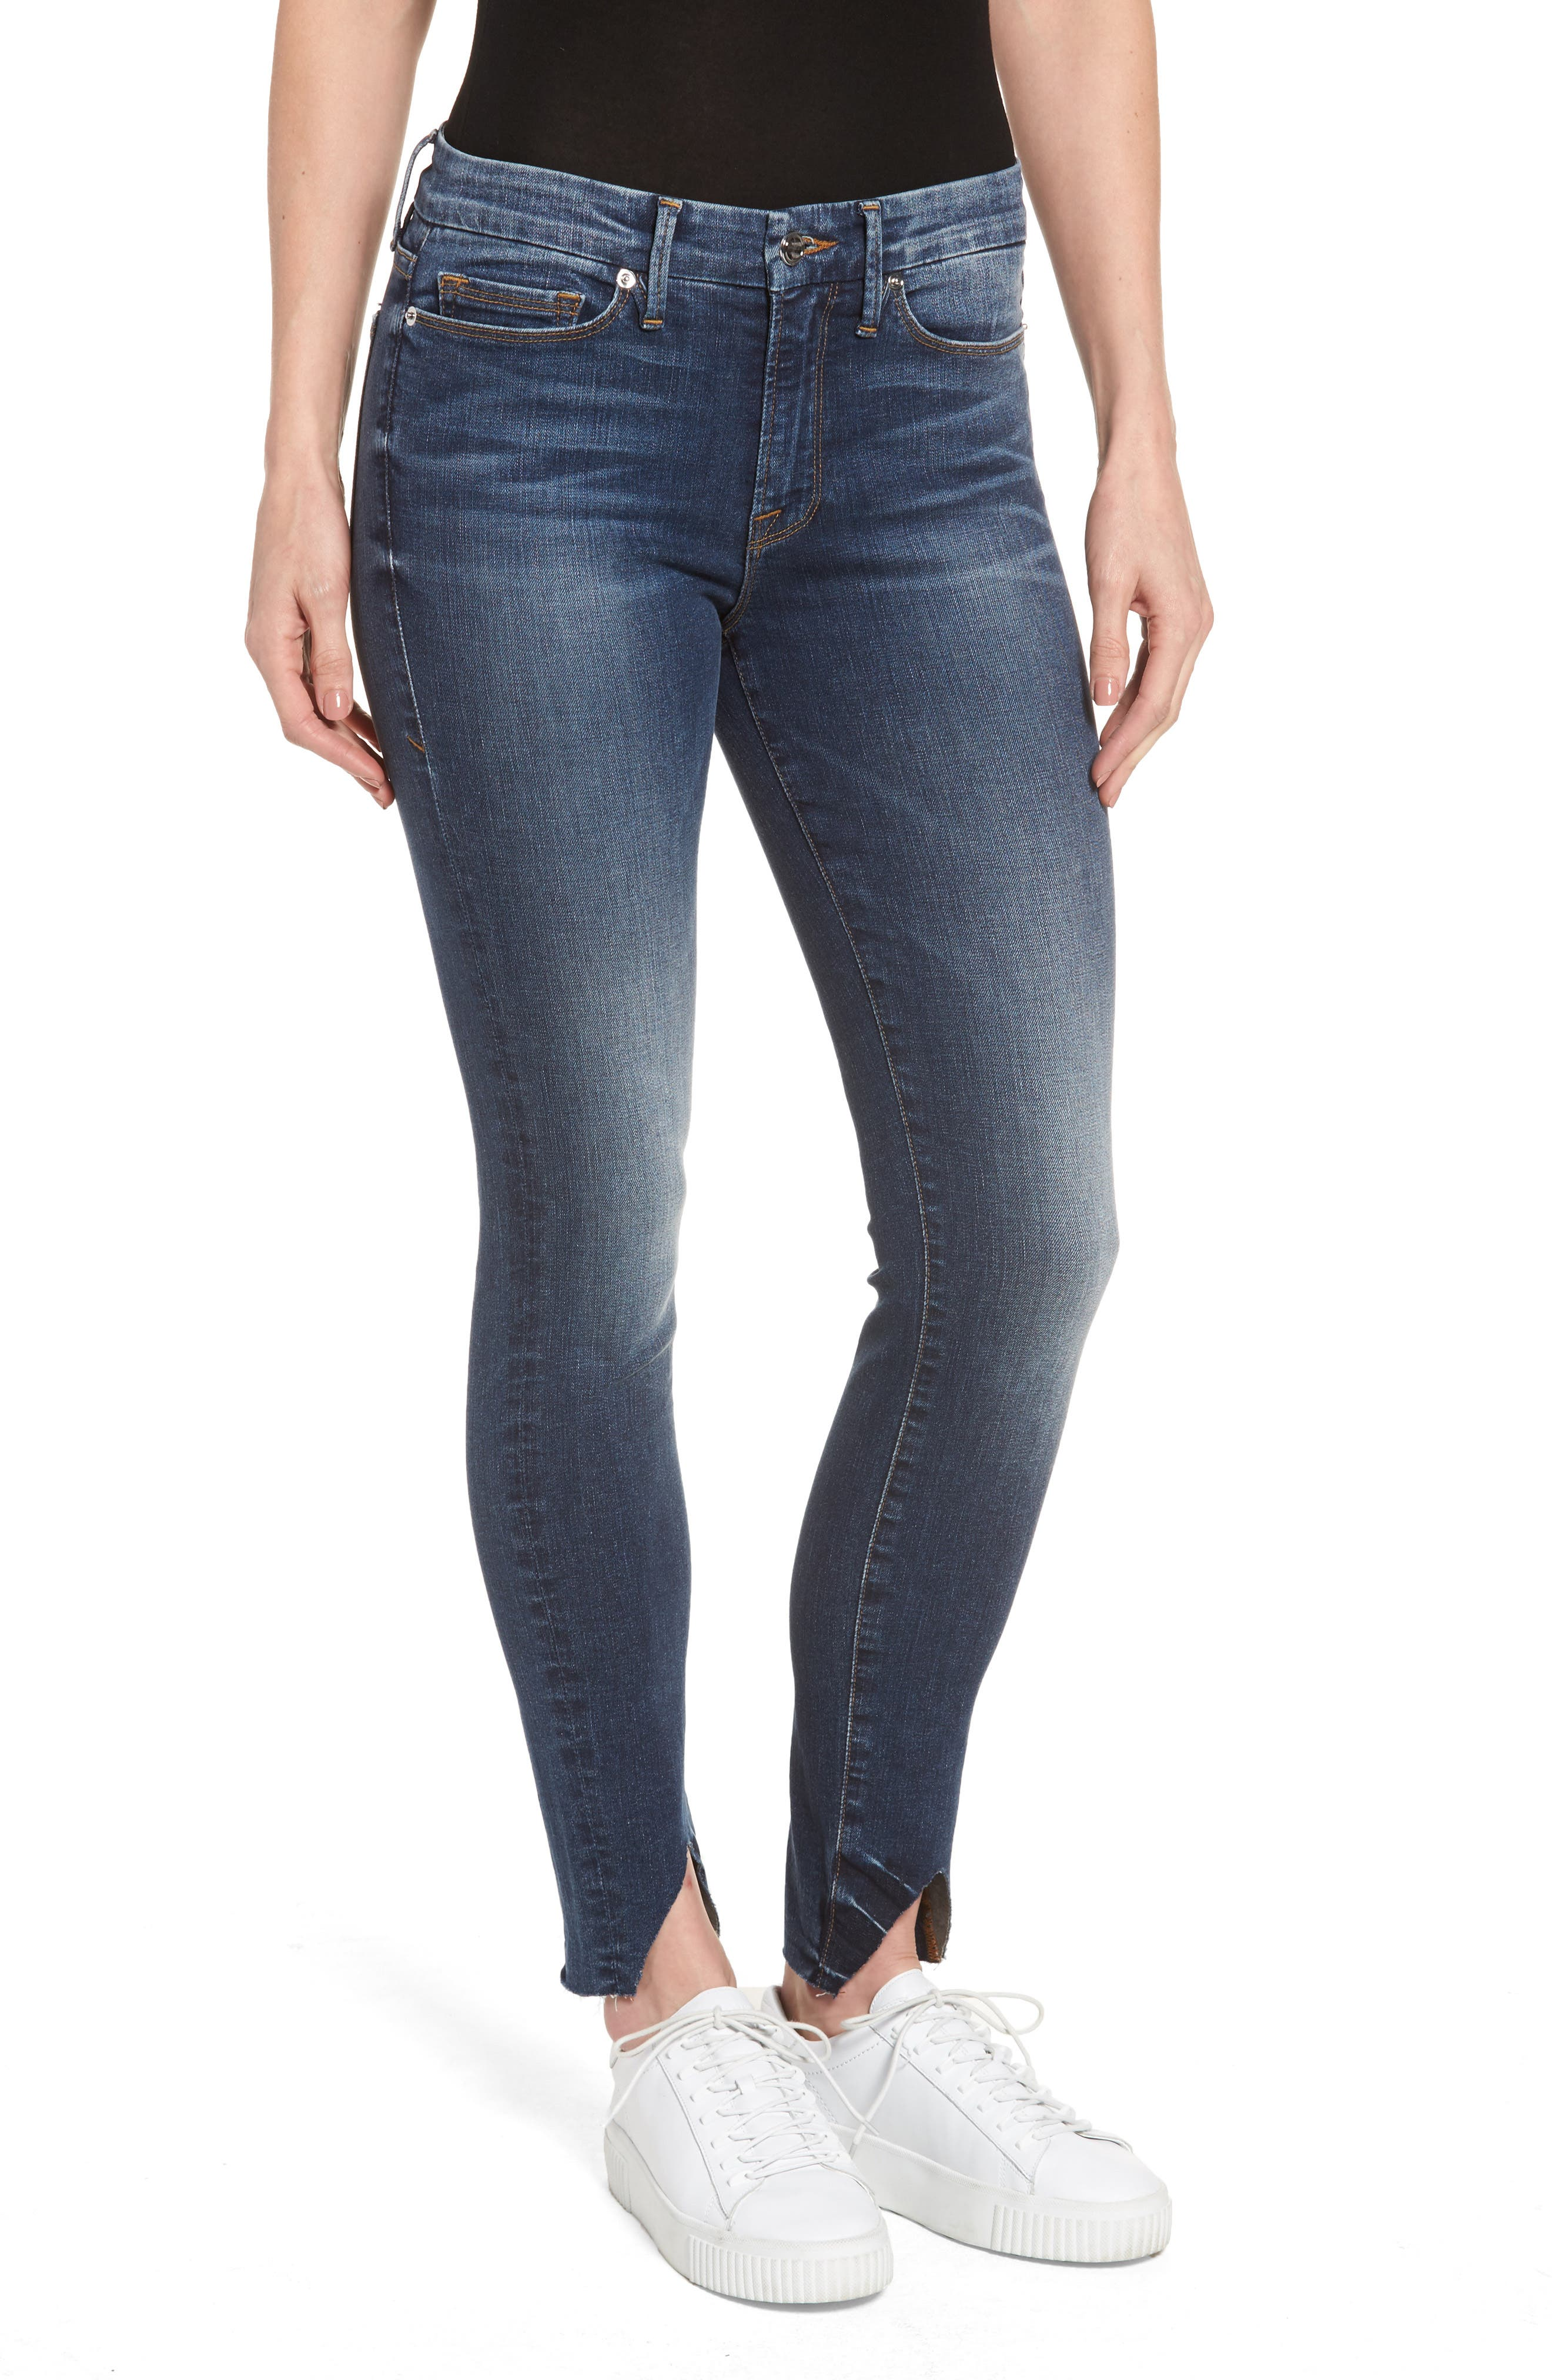 Alternate Image 1 Selected - Good American Good Legs High Waist Triangle Split Skinny Jeans (Blue 067) (Regular & Plus Size)